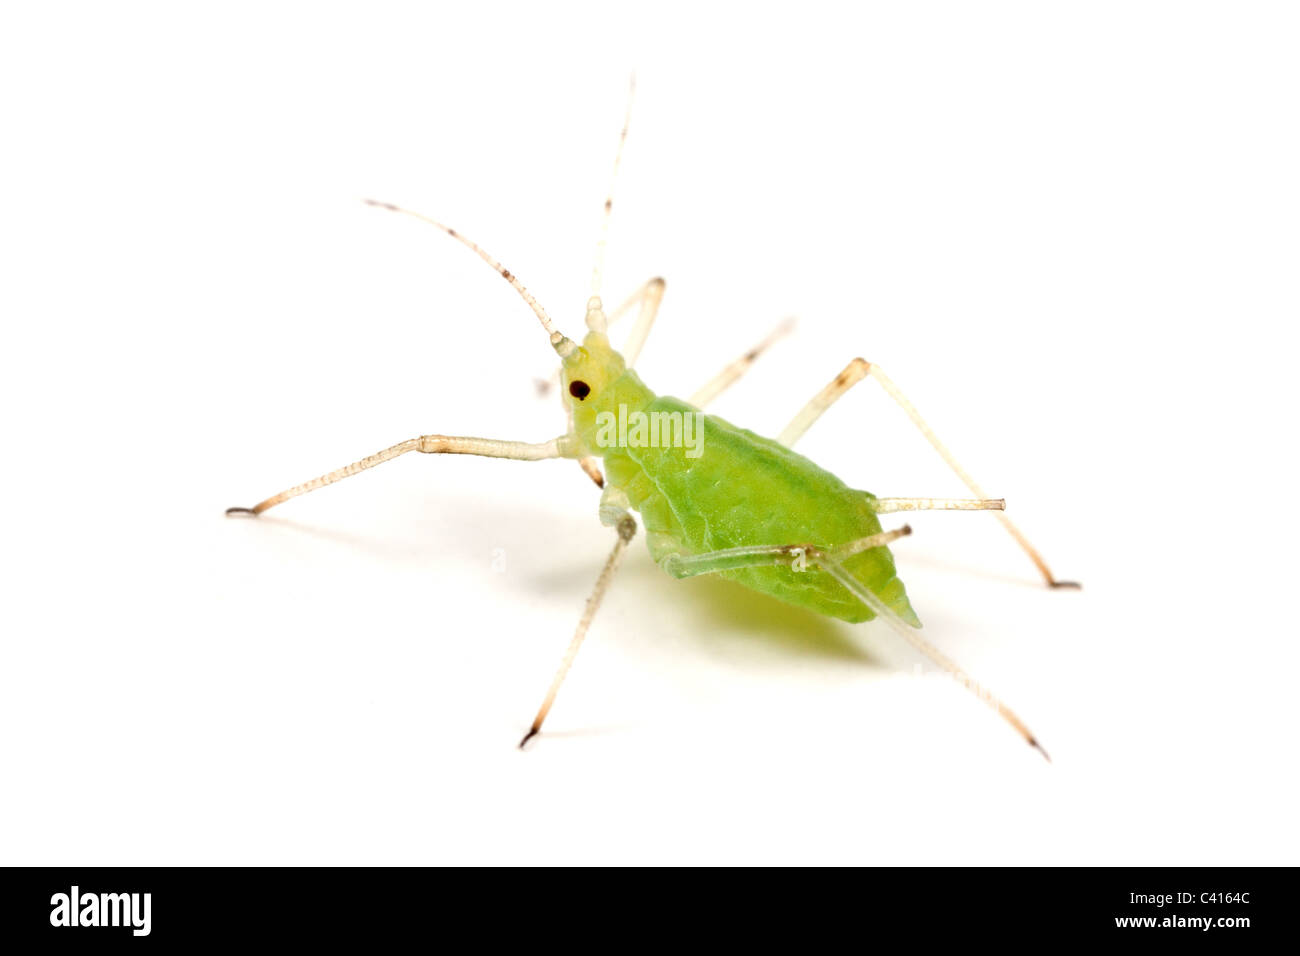 Aphid - wingless form - on a white background - Stock Image